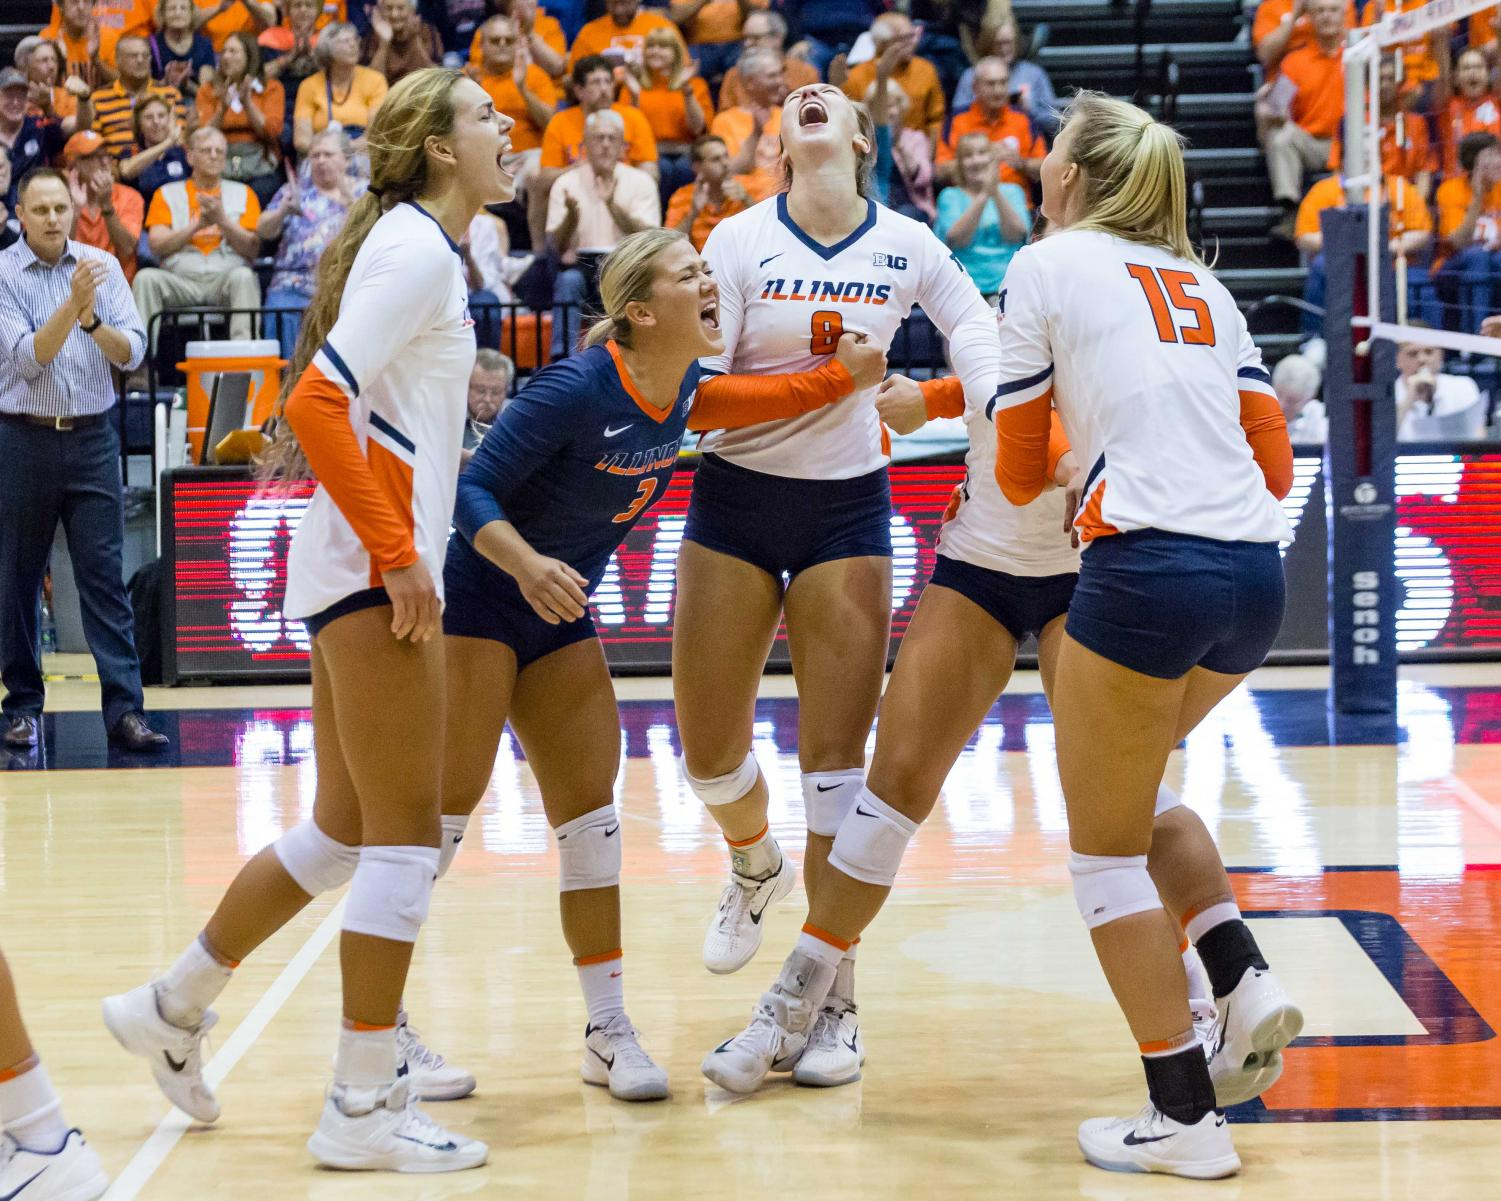 Illinois defensive specialist Brandi Donnelly (3) and her team celebrate during the match against Stanford at Huff Hall on Friday, September 8. The Illini lost 3-0.